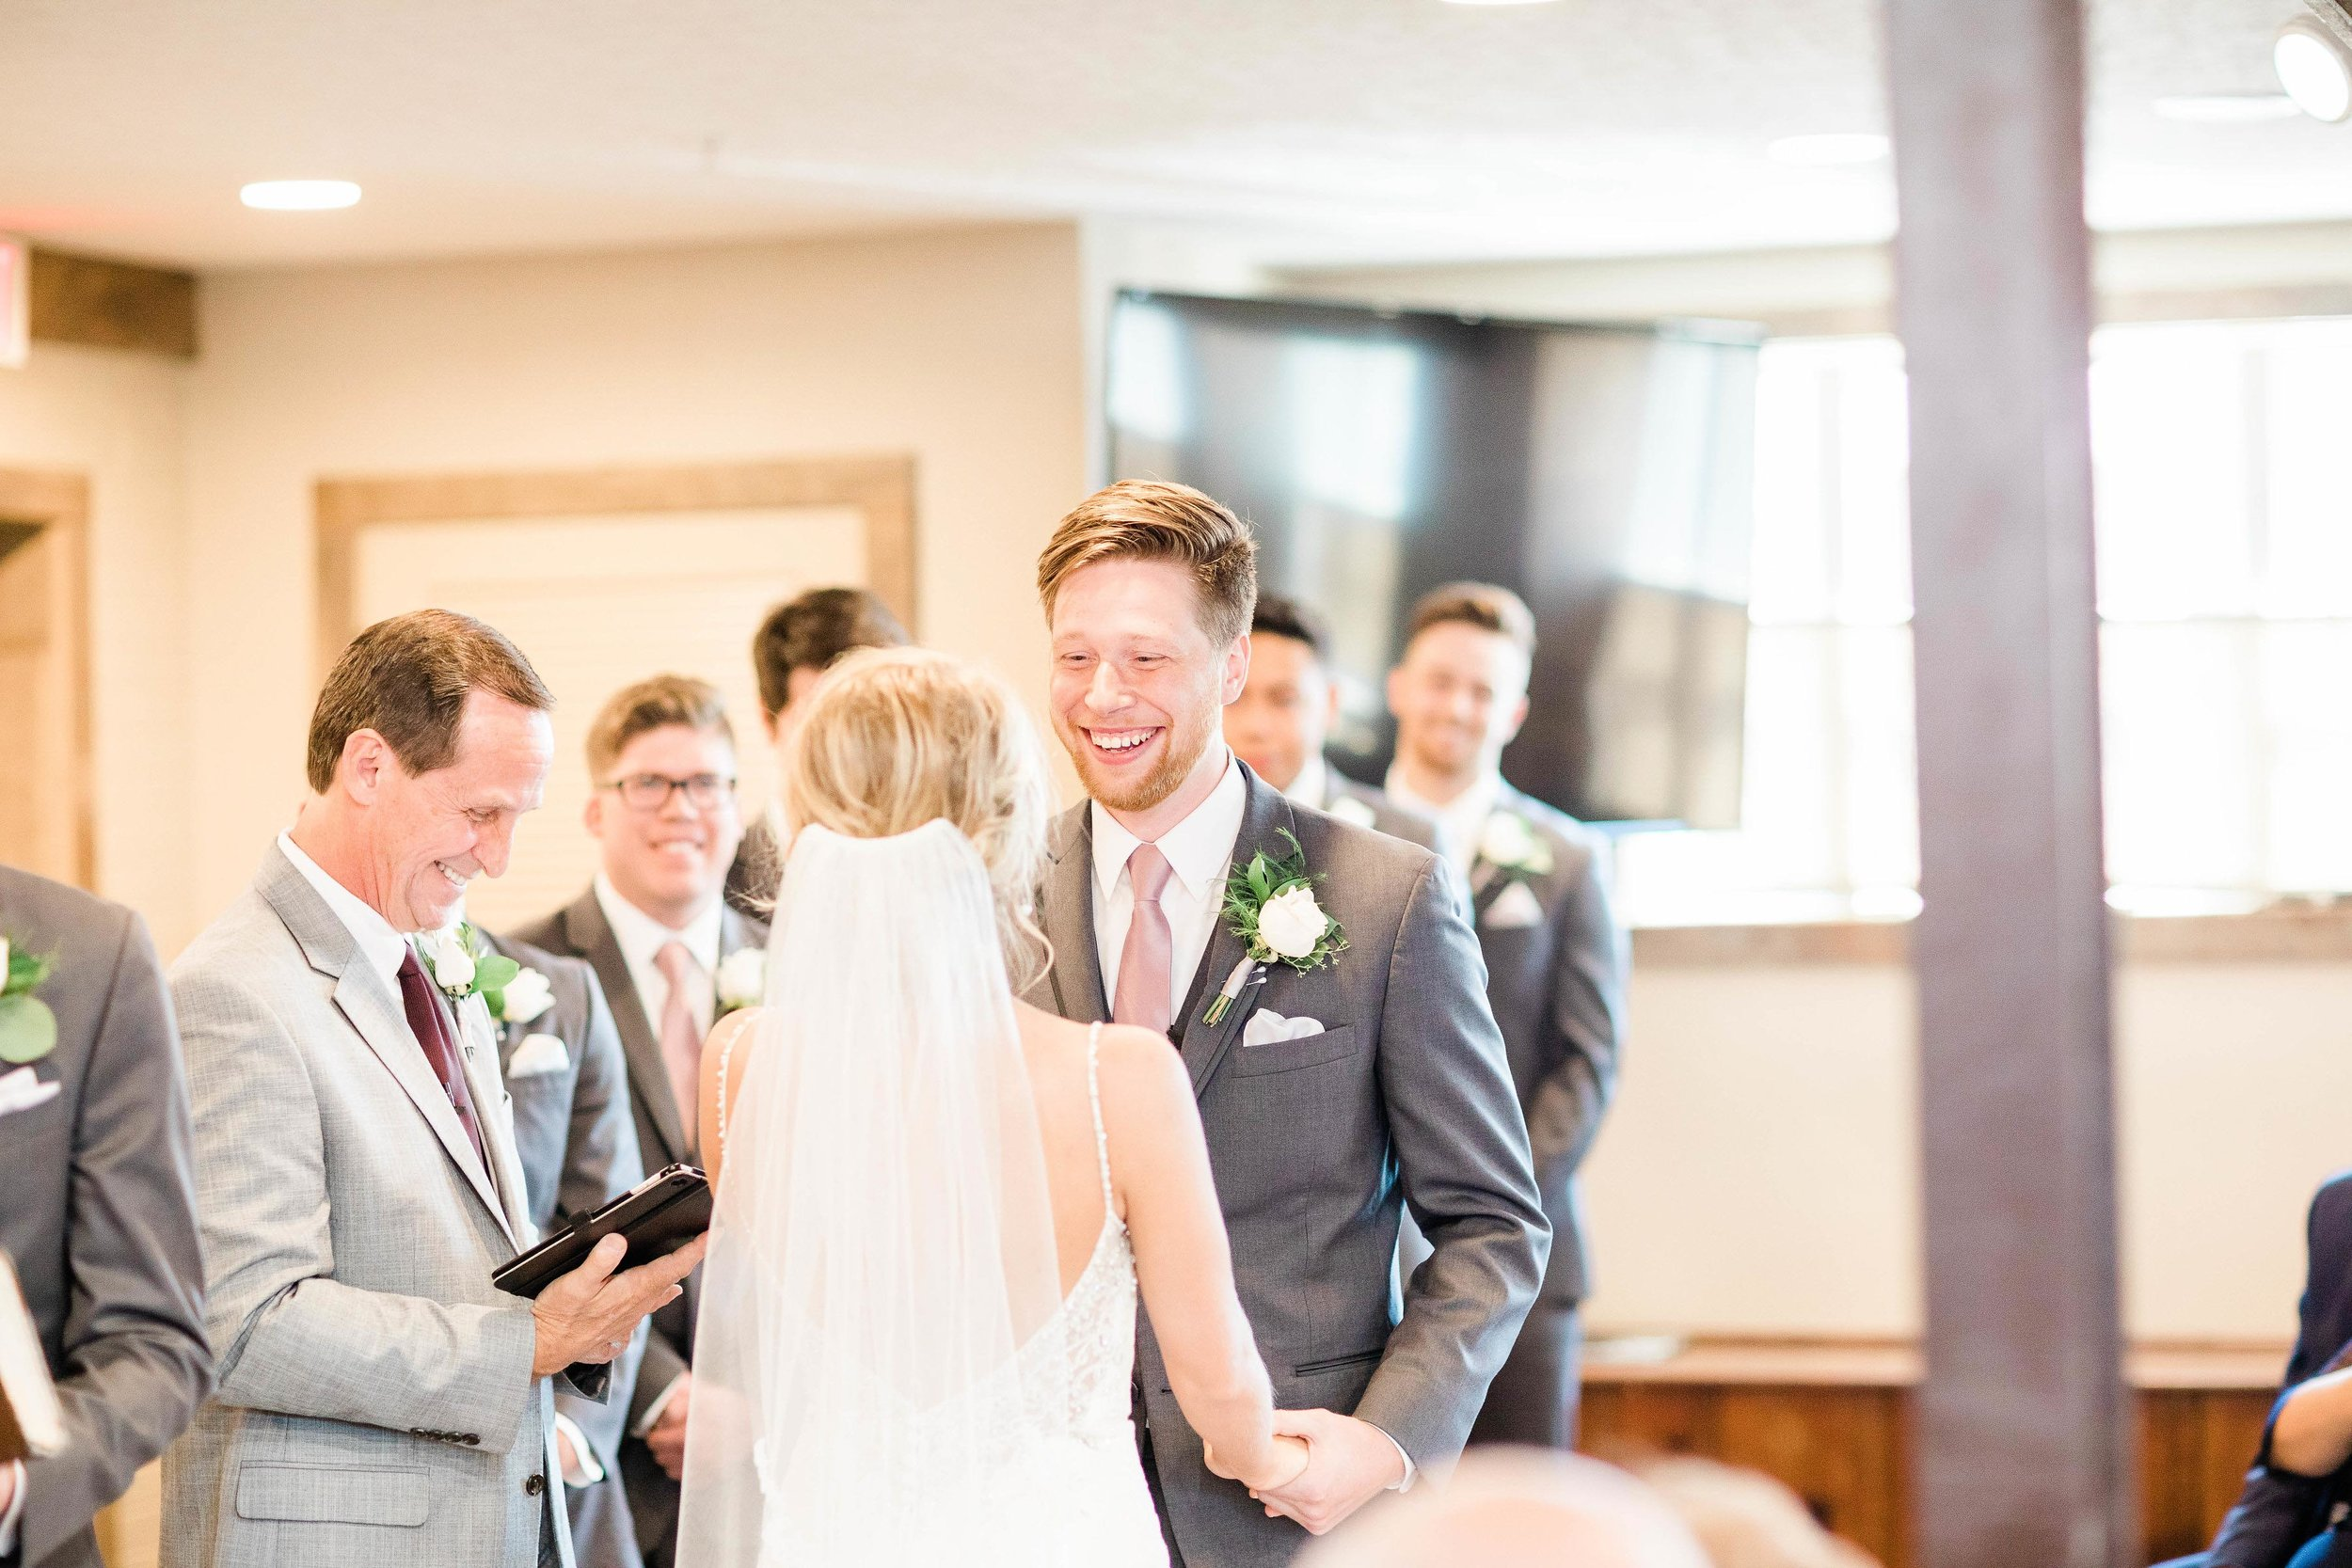 pickwick place wedding bucyrus ohio-5.jpg